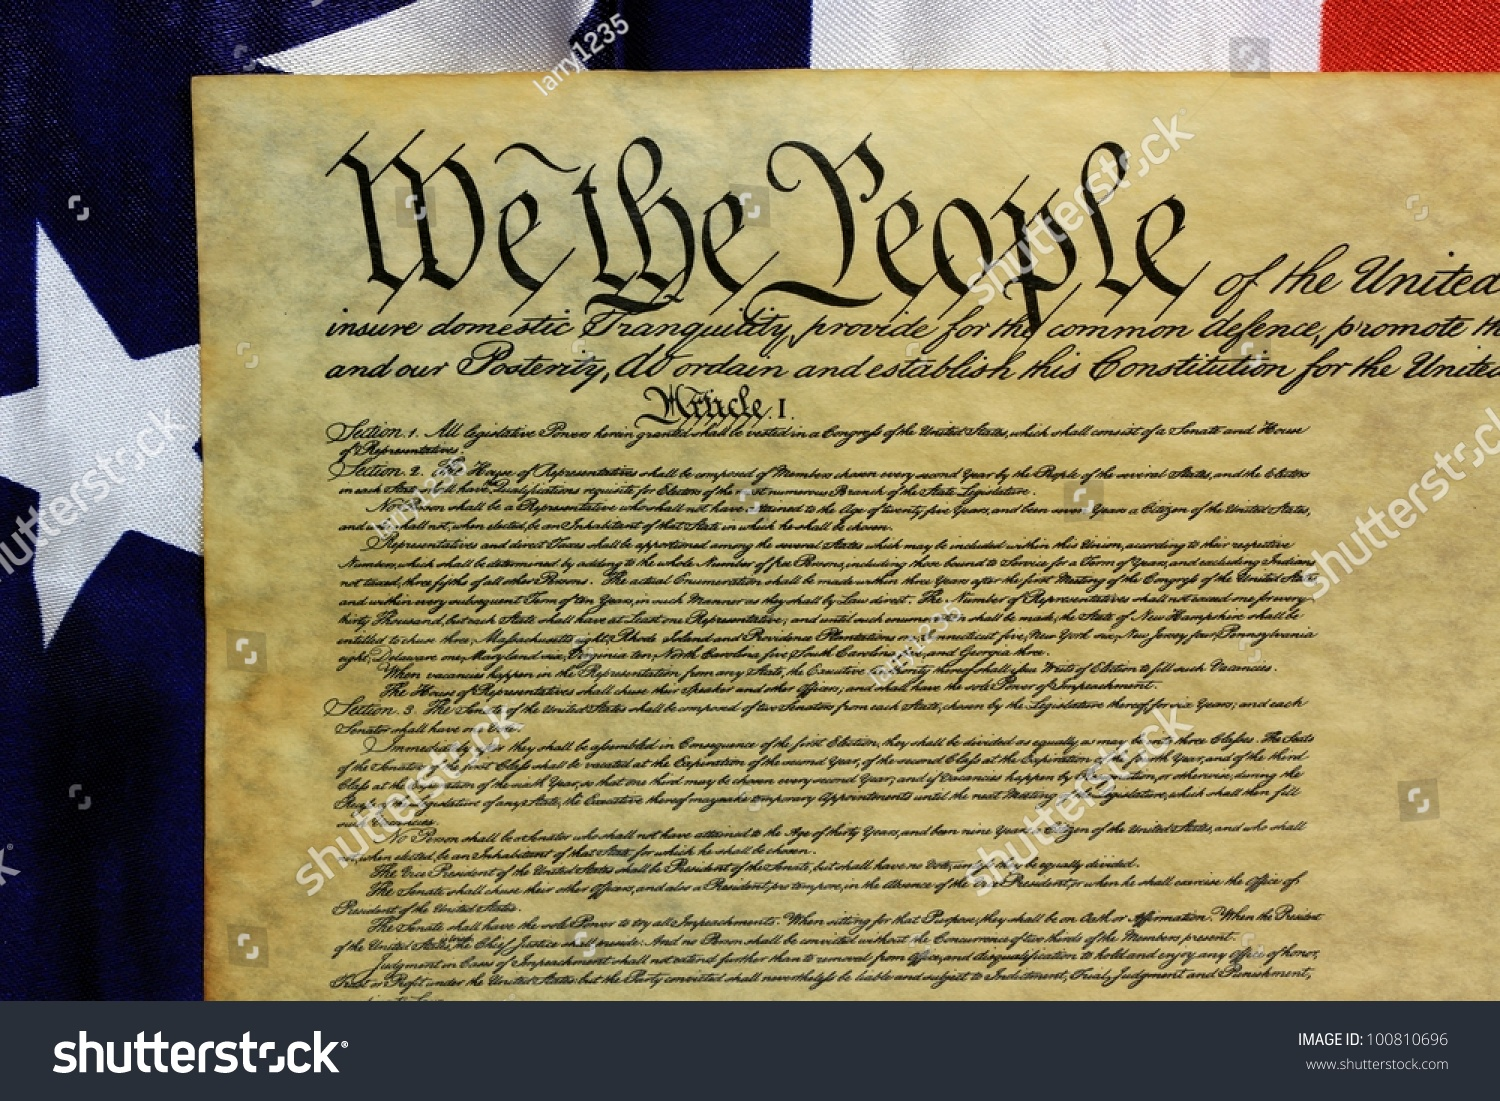 an analysis of constitution of the united states The united states constitution is the highest law of the united states of america  analysis and interpretation of the constitution of the united states:.